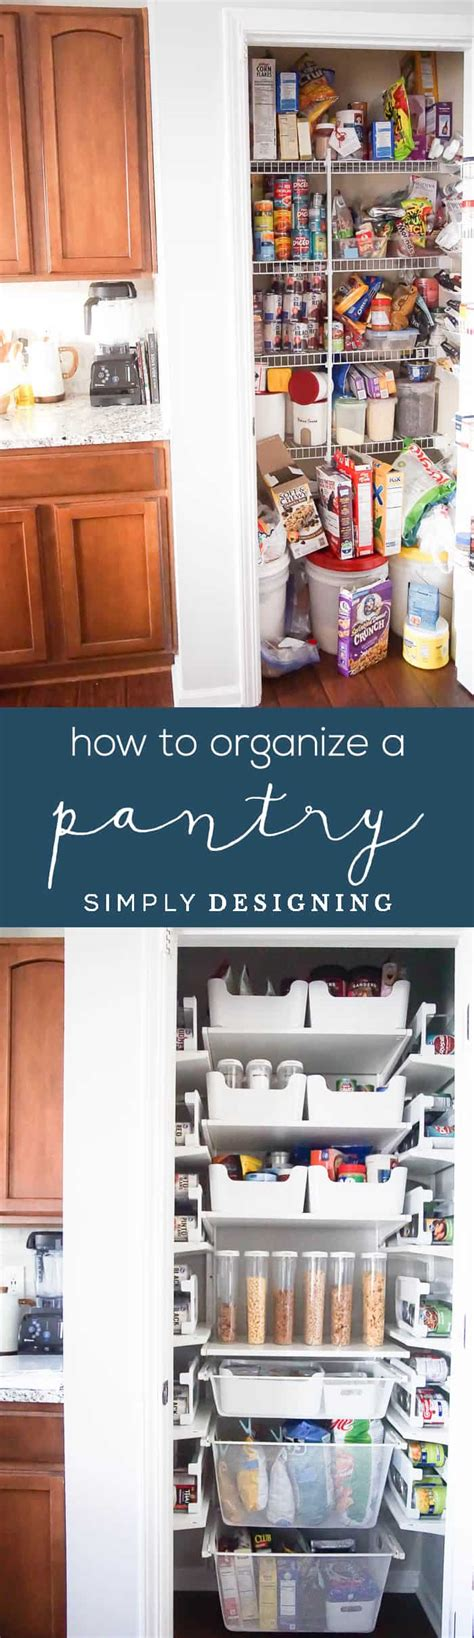 tiny kitchen organization ideas how to organize a closet the stairs pantry 6260